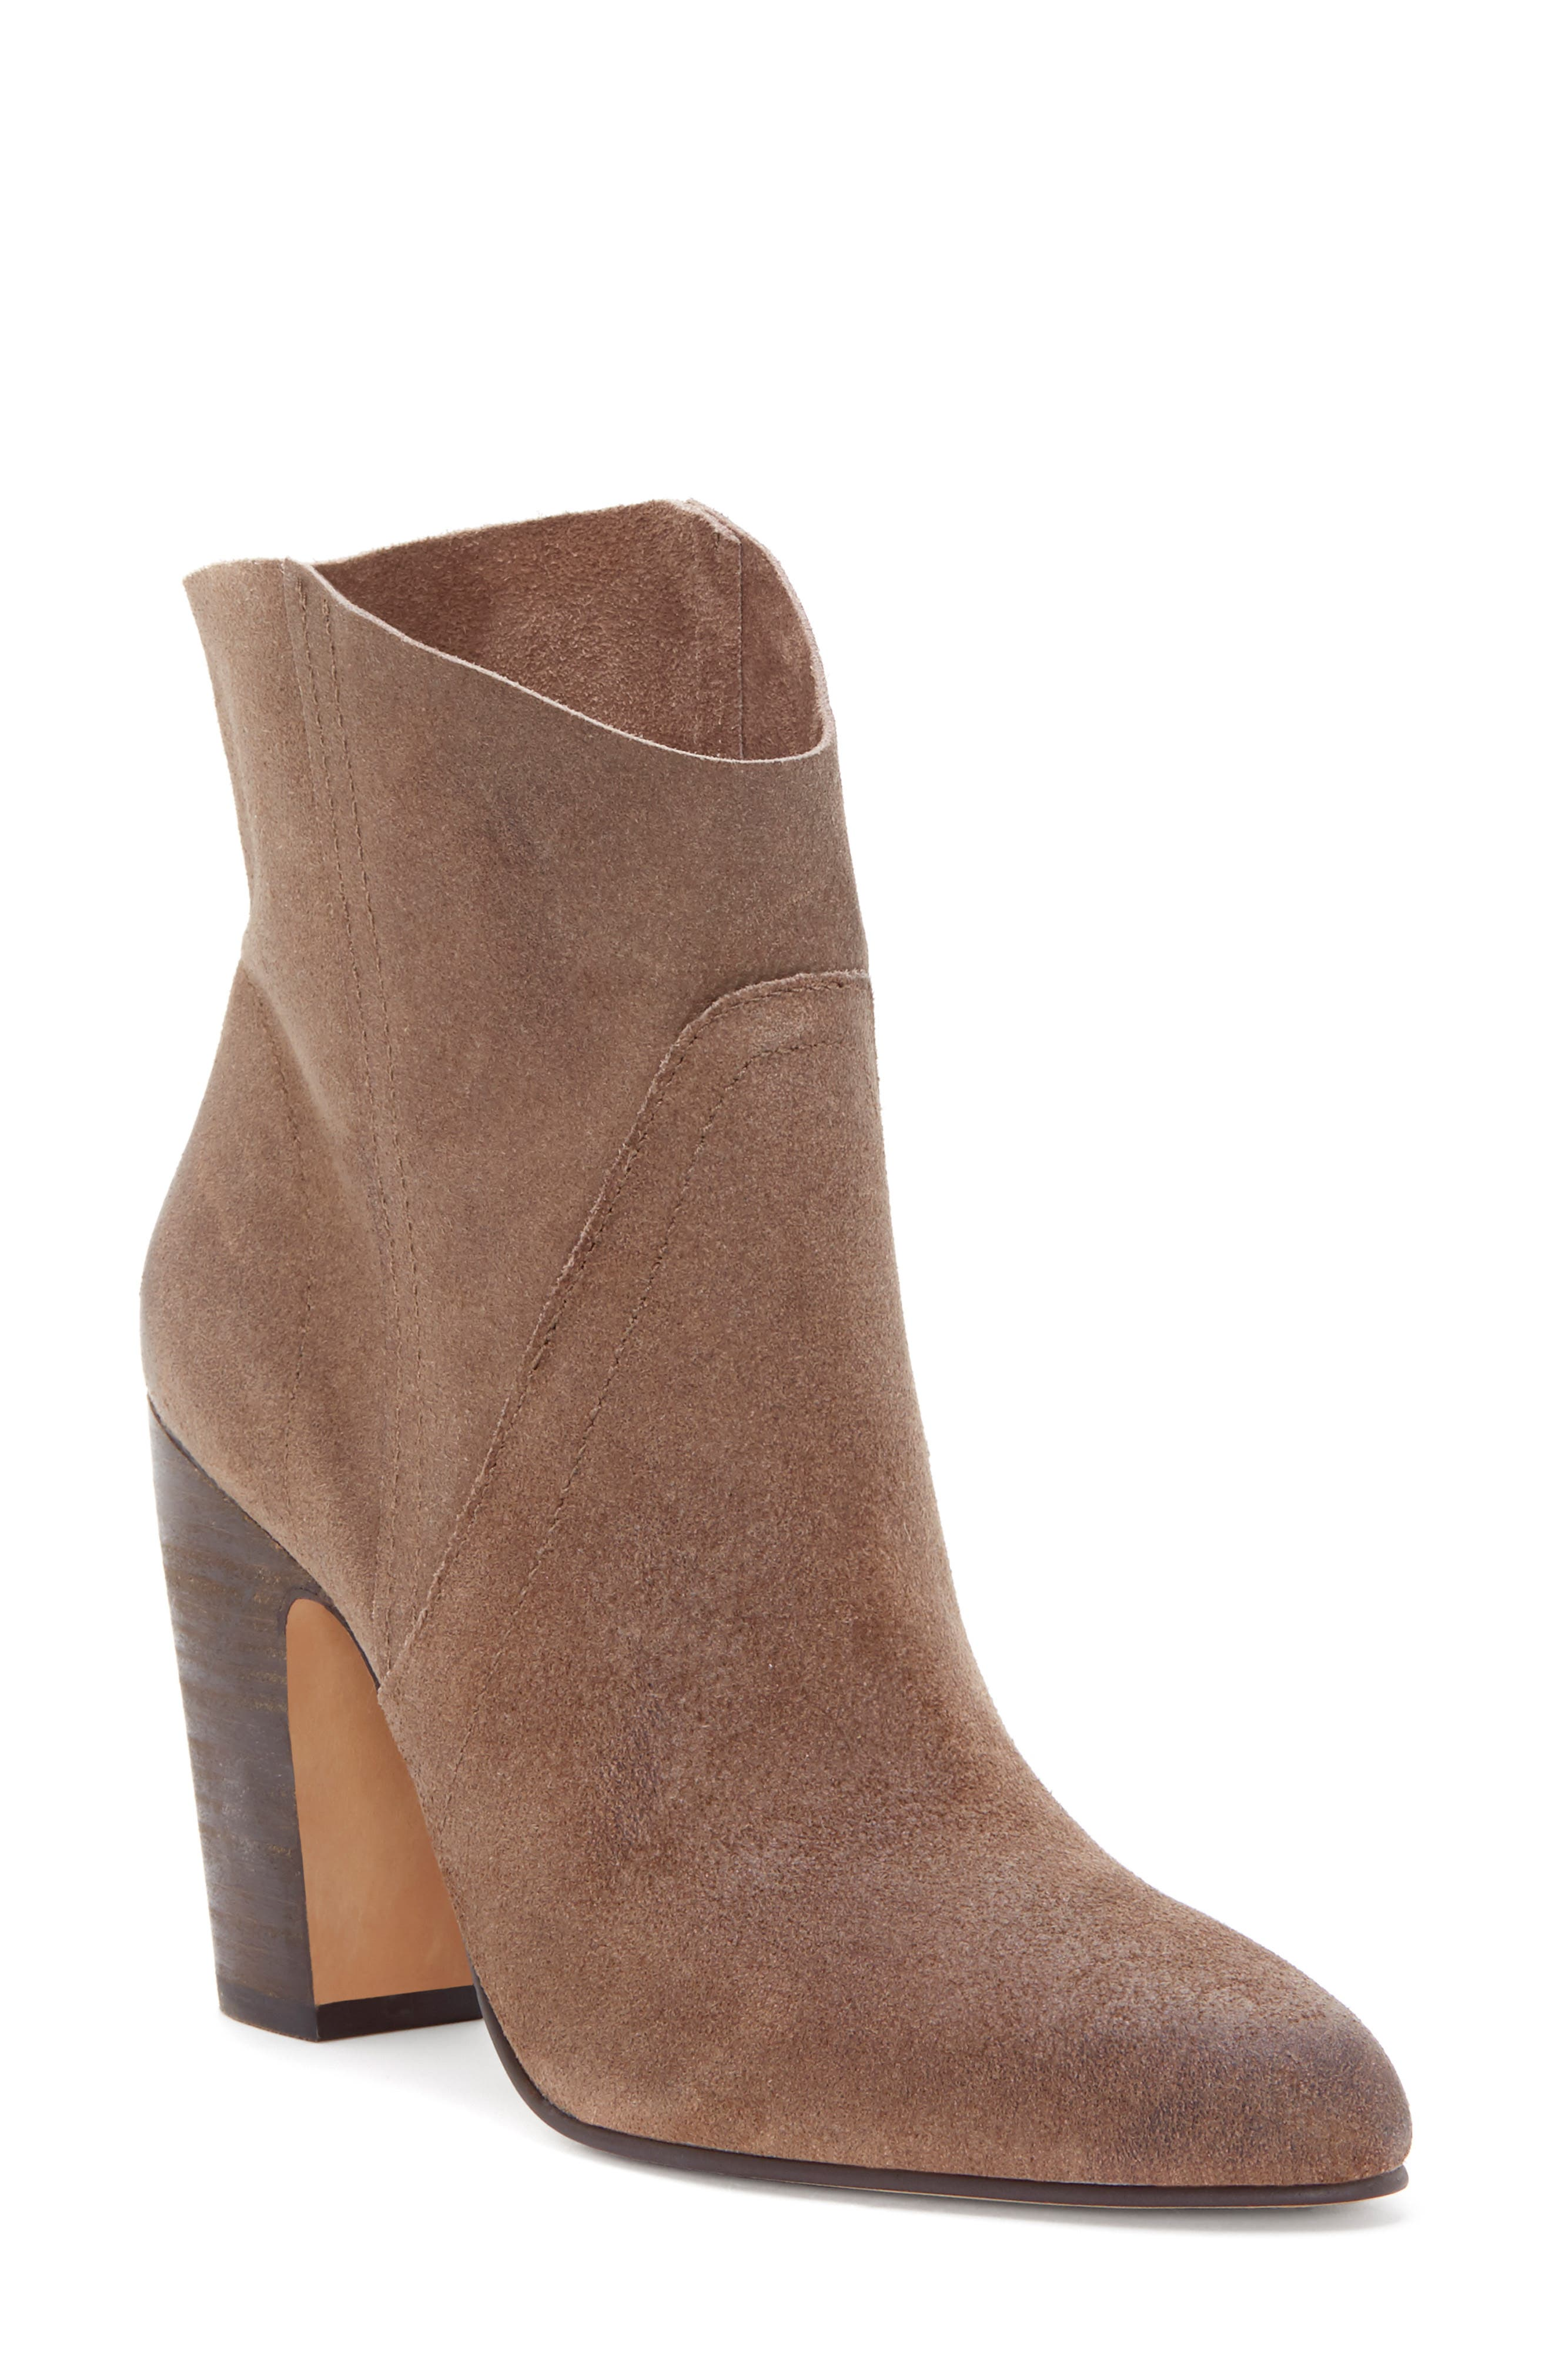 VINCE CAMUTO, Creestal Western Bootie, Main thumbnail 1, color, BEDROCK LEATHER